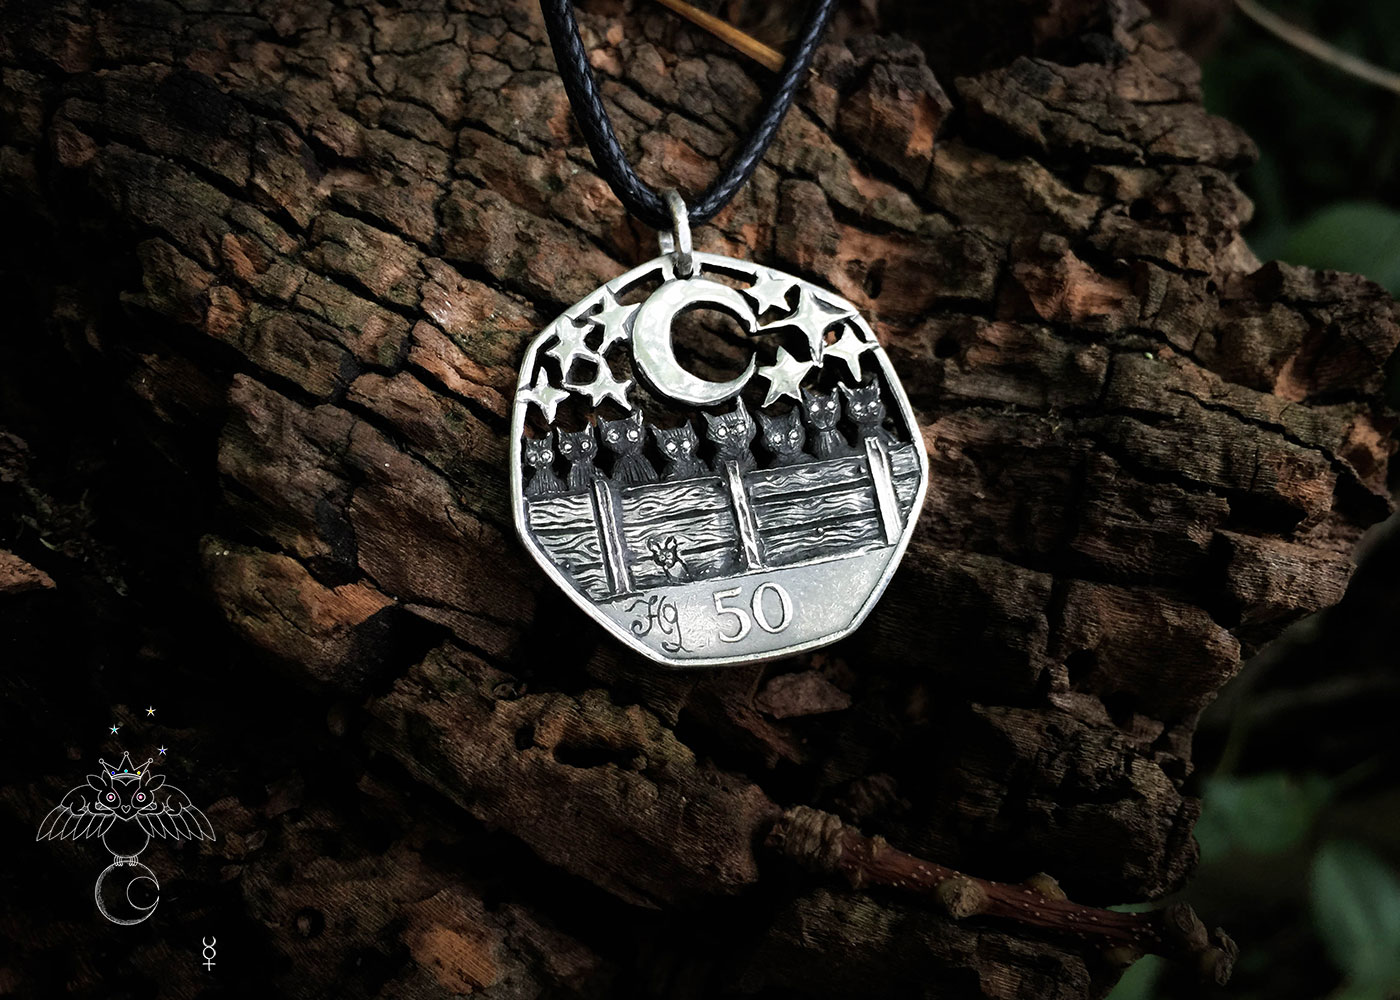 Black cat jewellery handmade from old coins. Each coin is recycled into a desirable, piece of completely original, black cat jewellery ☽◯☾.